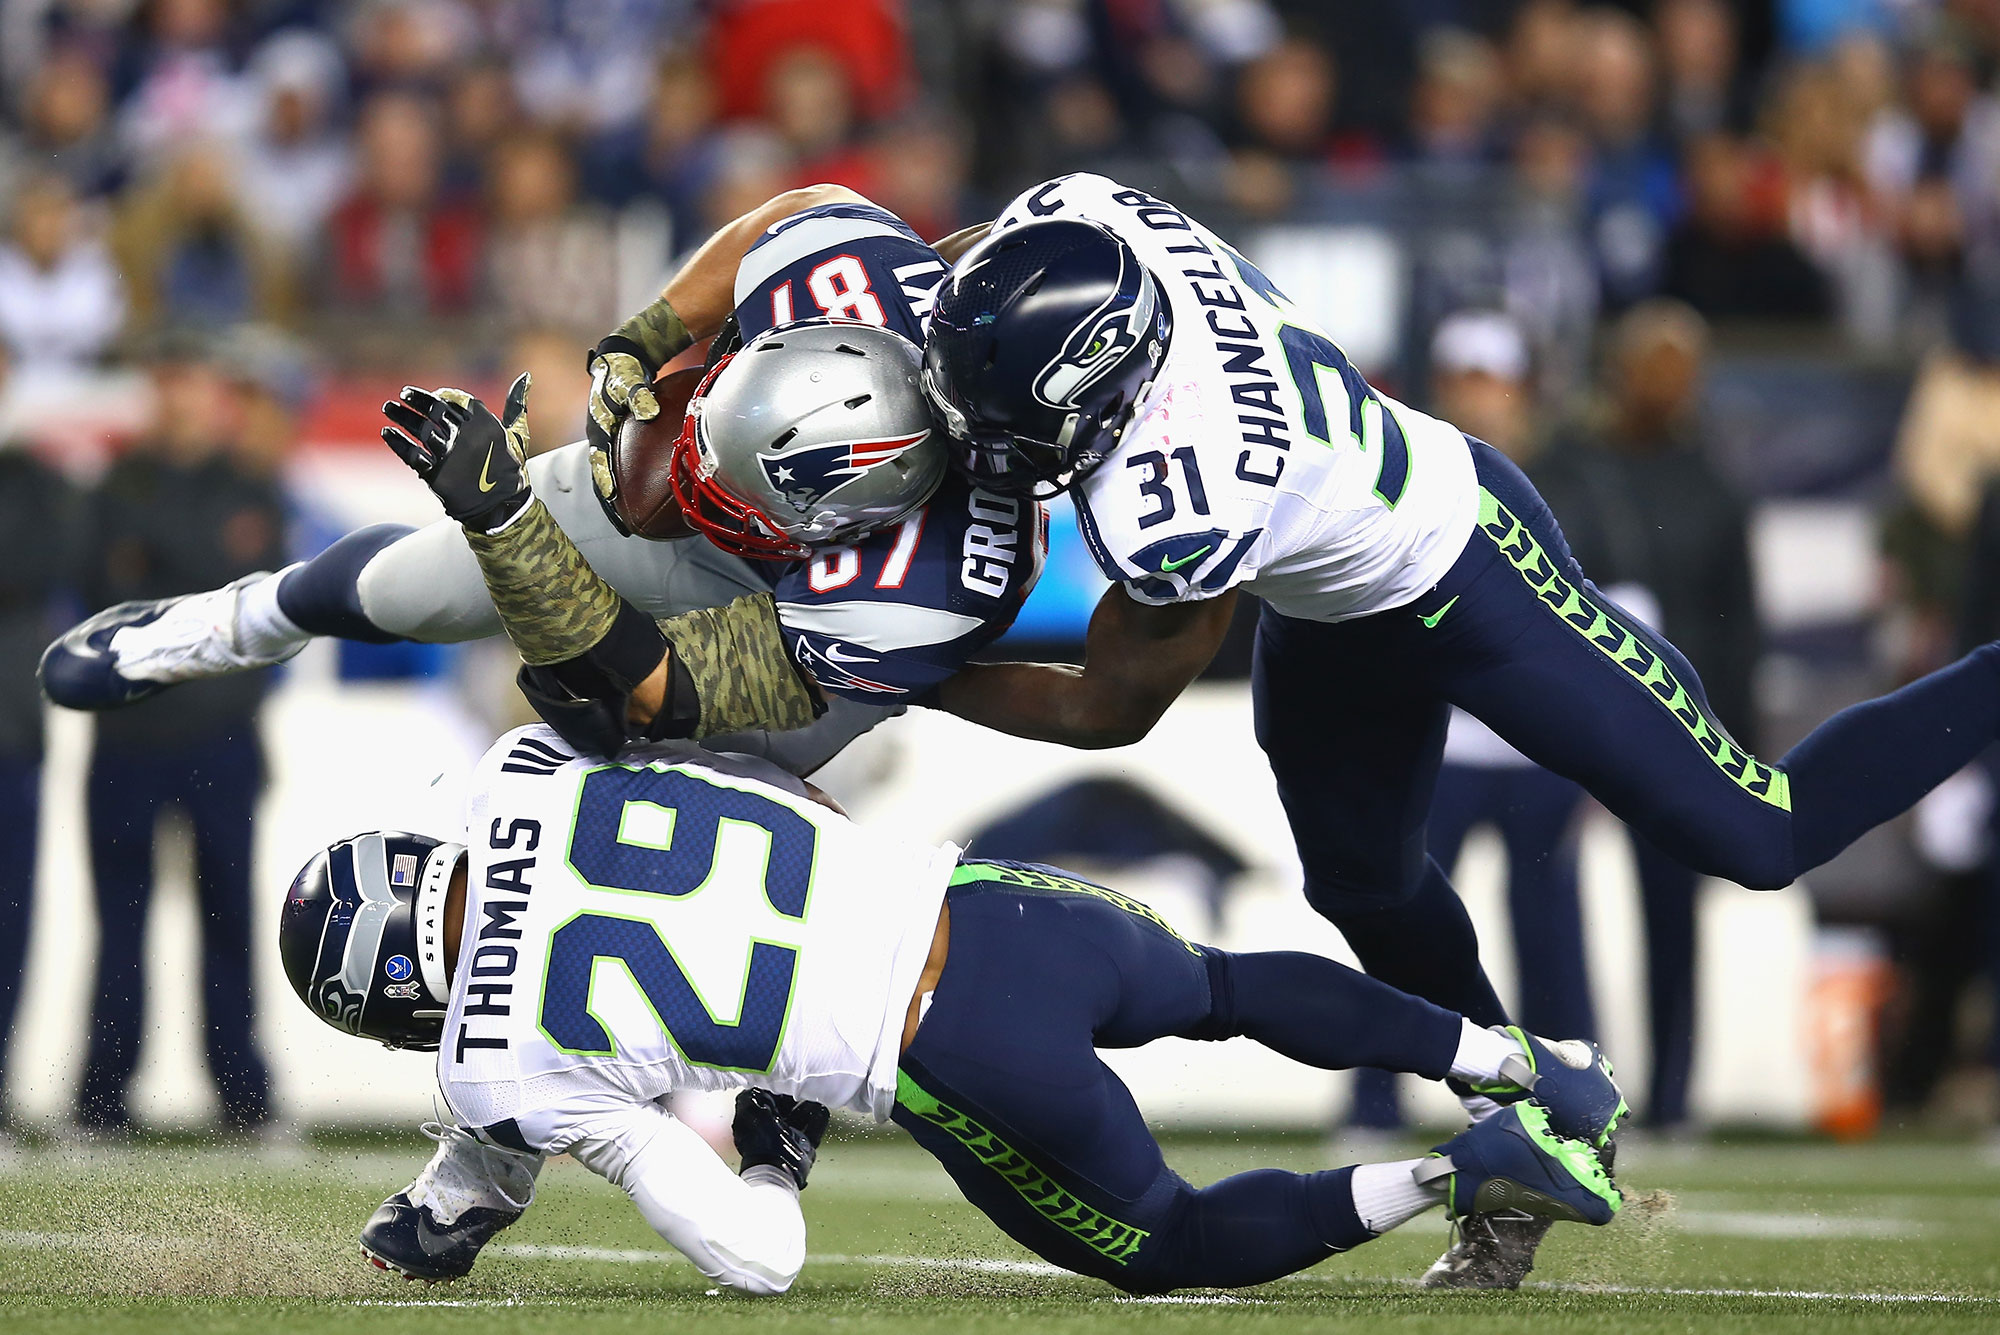 Patriots player Rob 'Gronk' Gronkowski gets tackled during a game against the Seattle Seahawks.